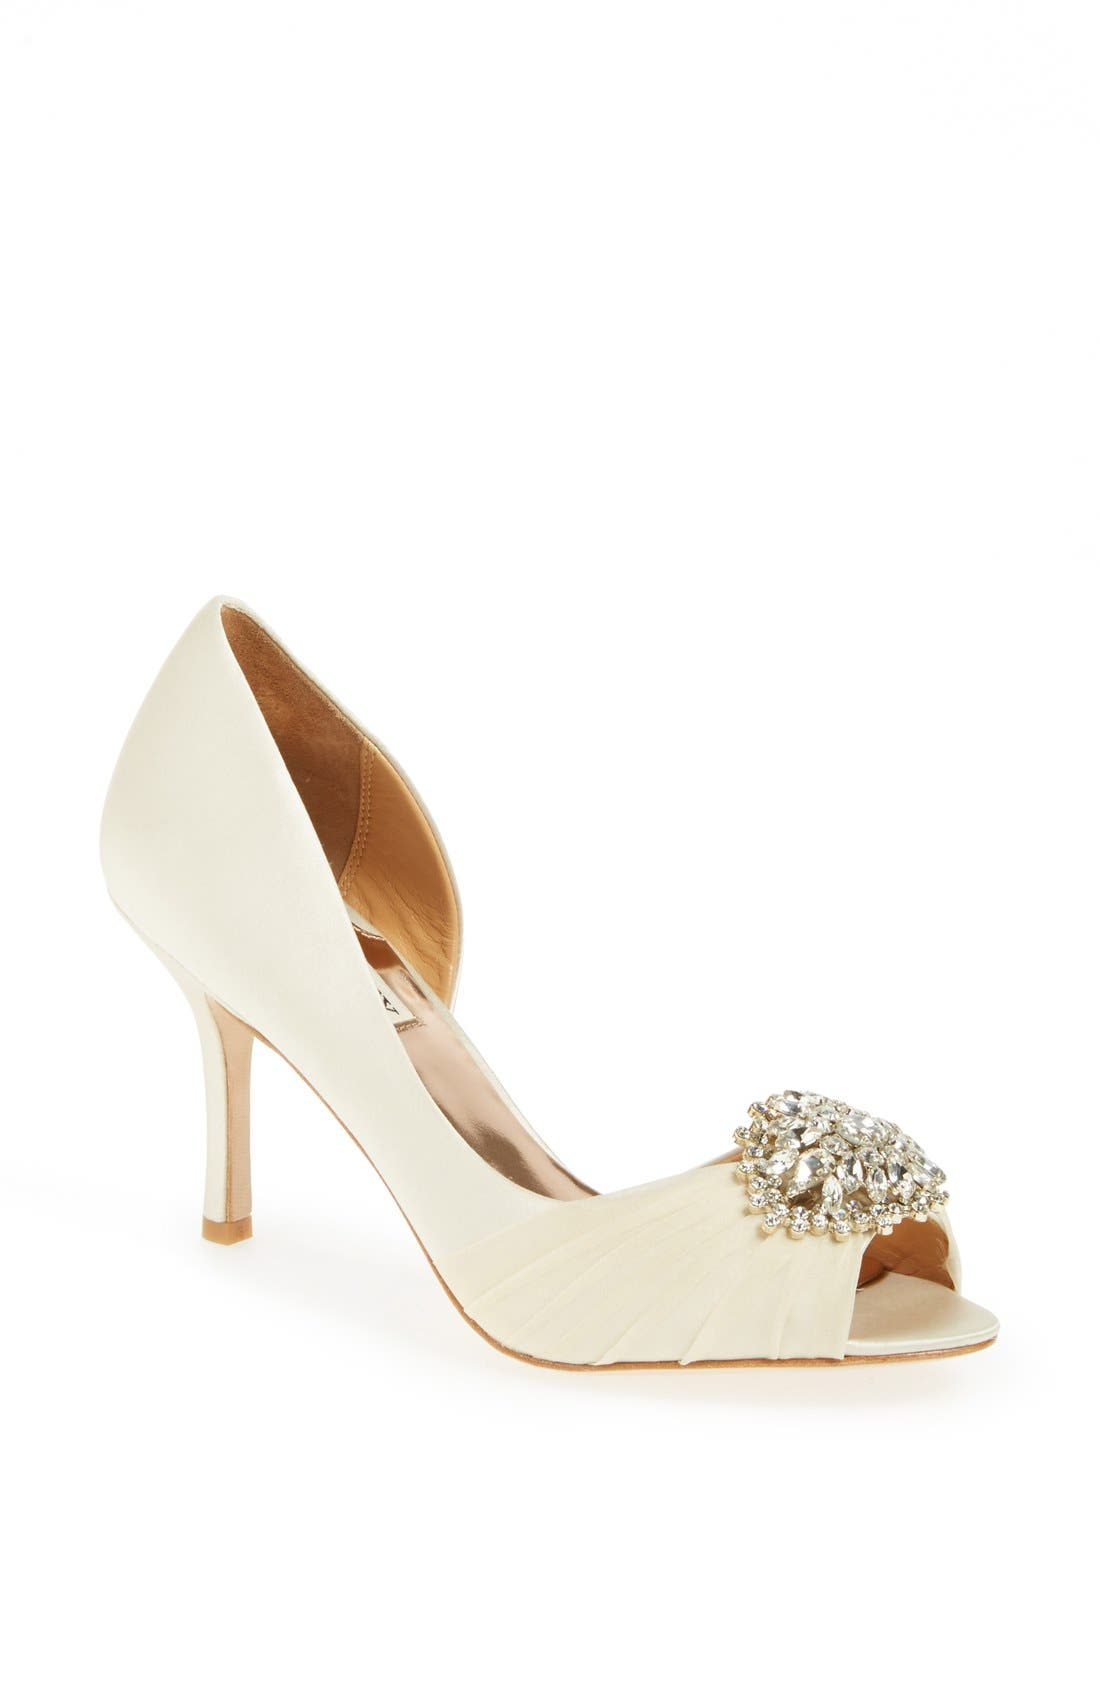 Main Image - Badgley Mischka 'Pearson' Pump